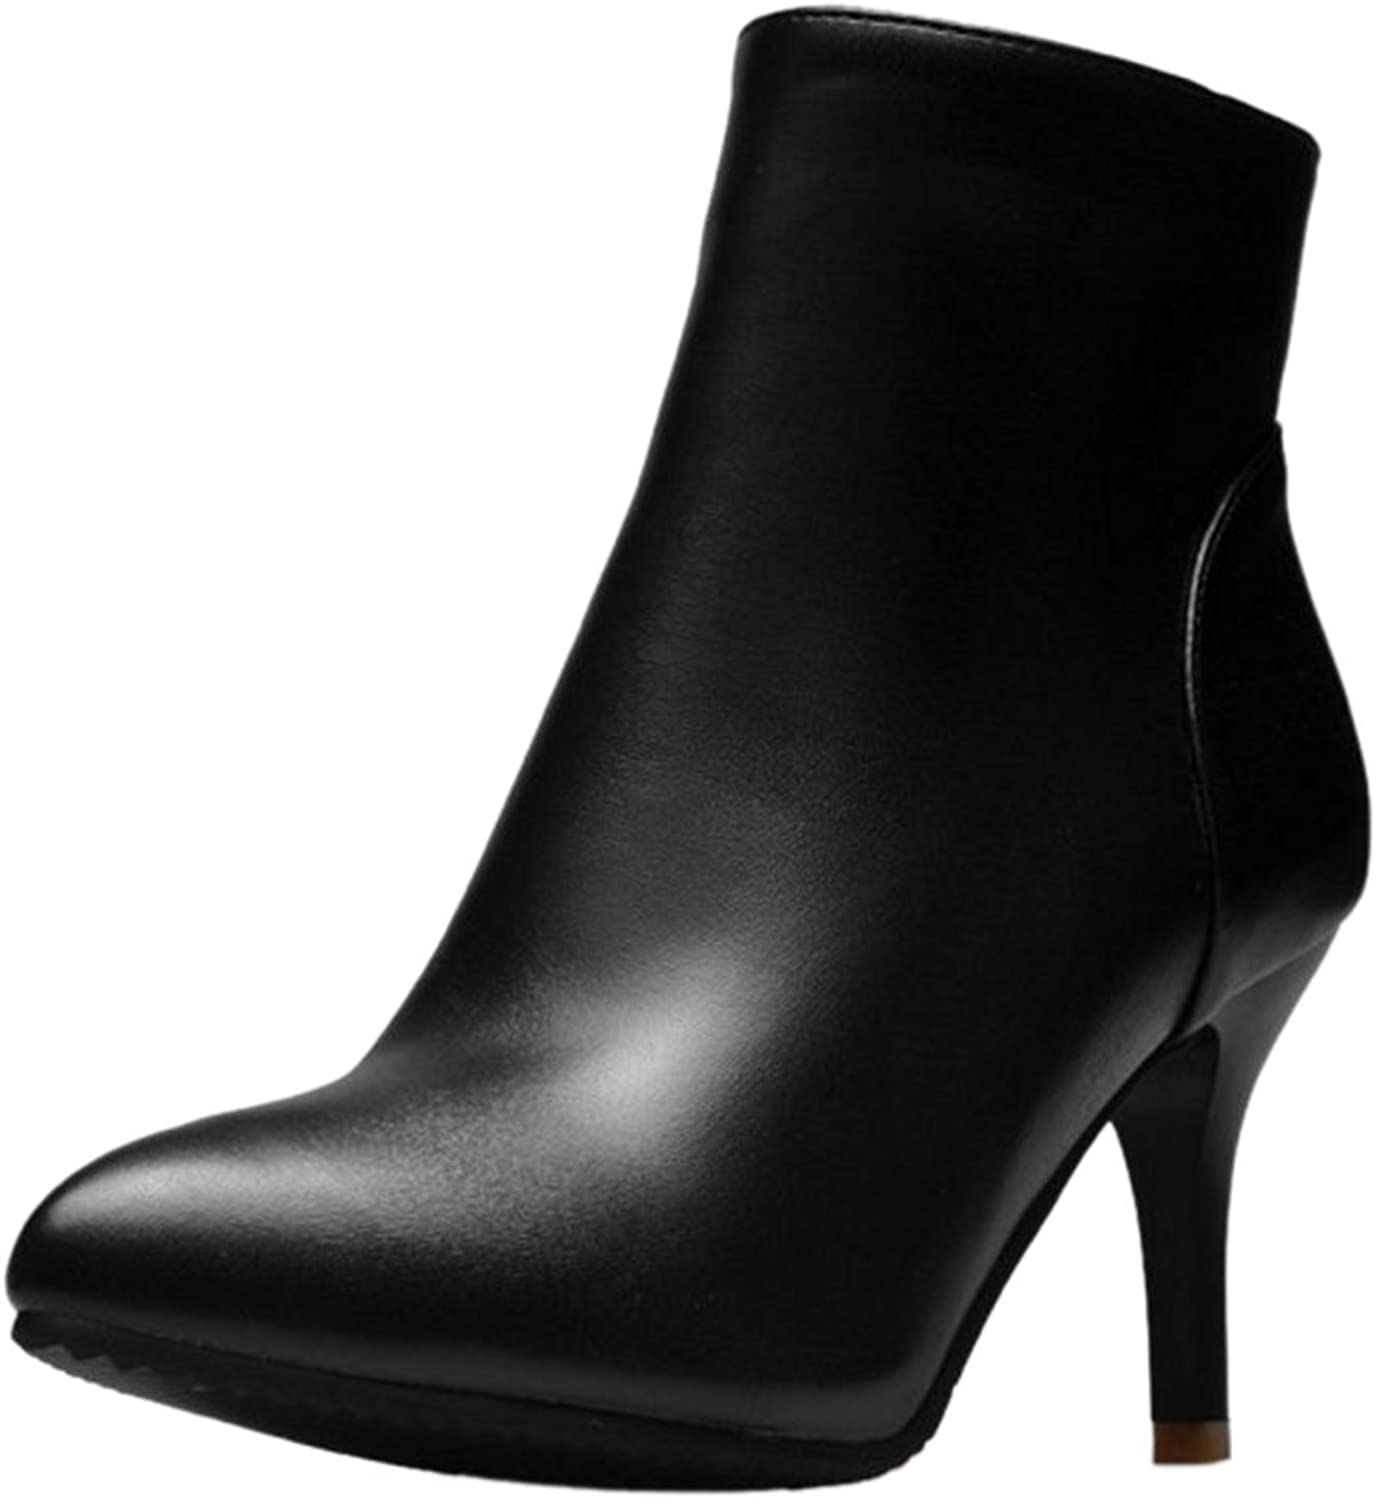 Smilice Women Dress Stiletto Pointed Toe Ankle Boots with Solid color Black